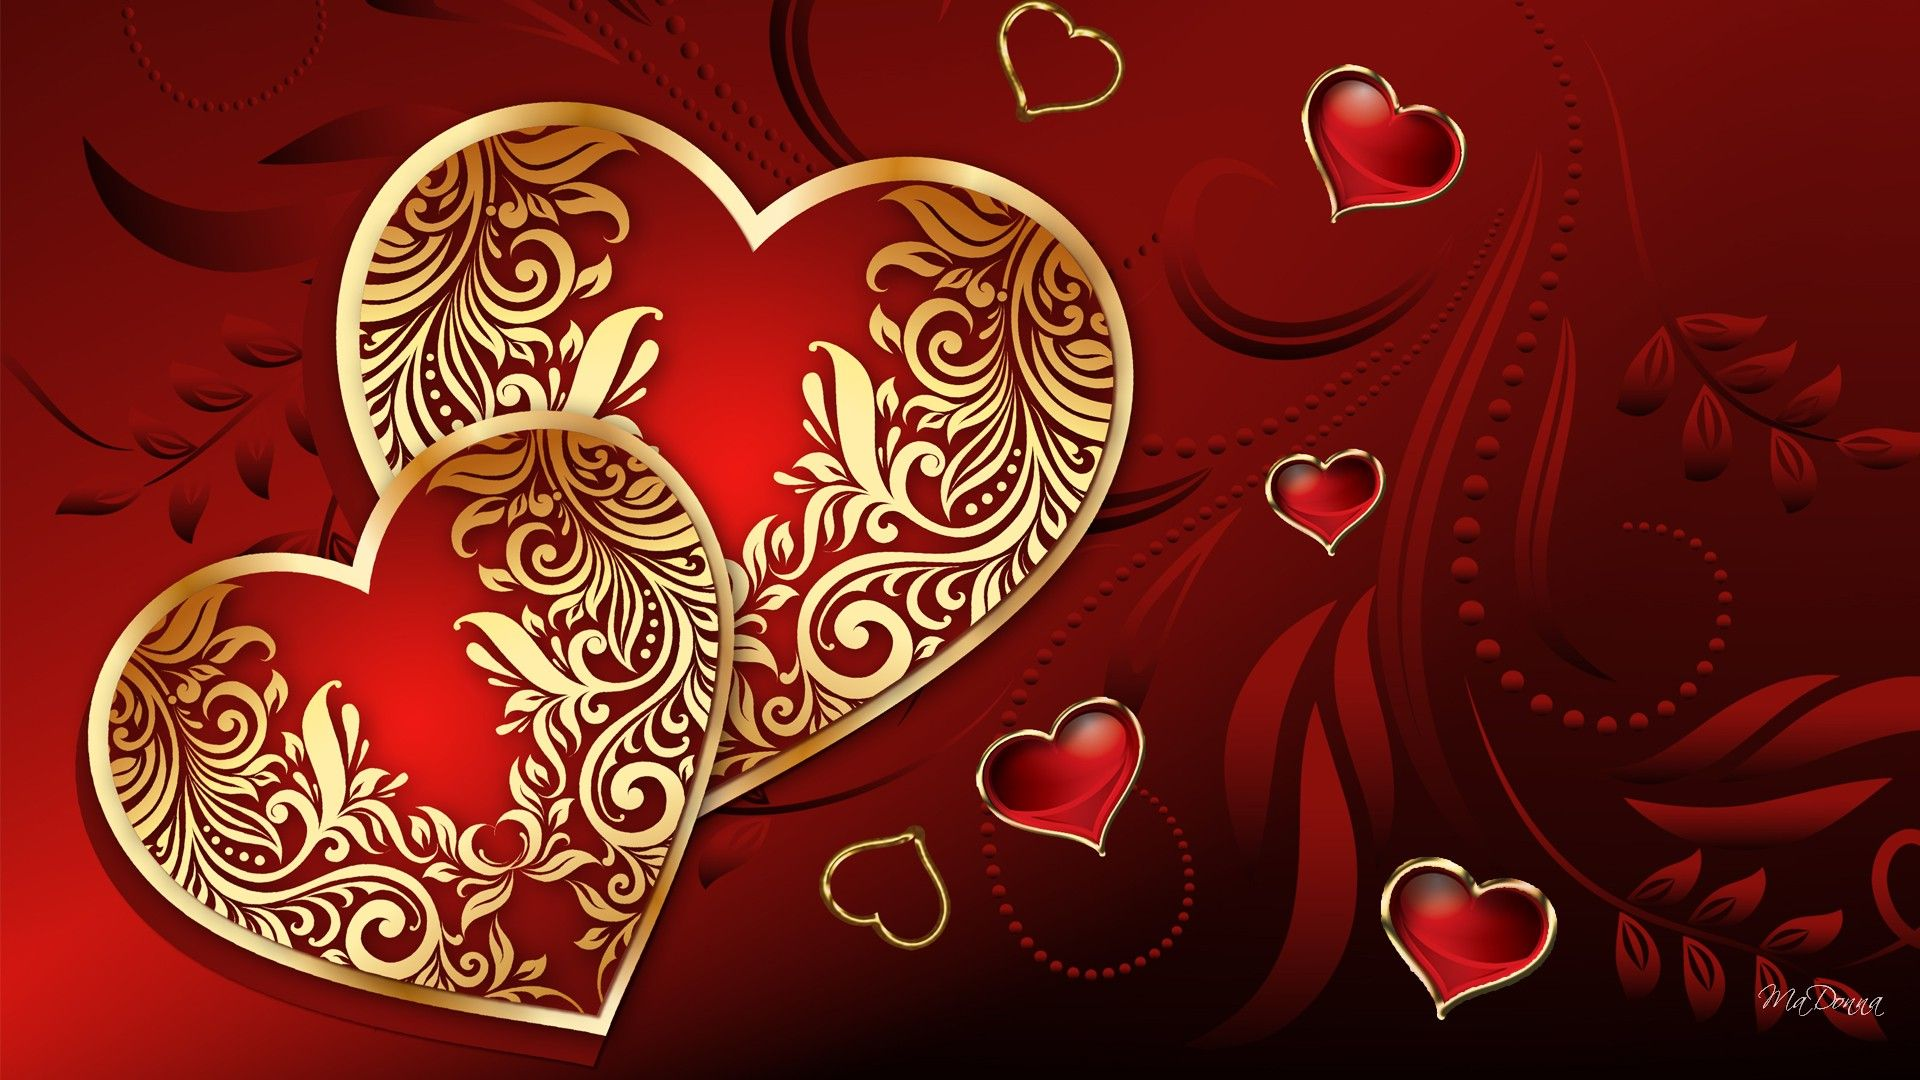 happy valentine's day check out more exciting hd wallpapers